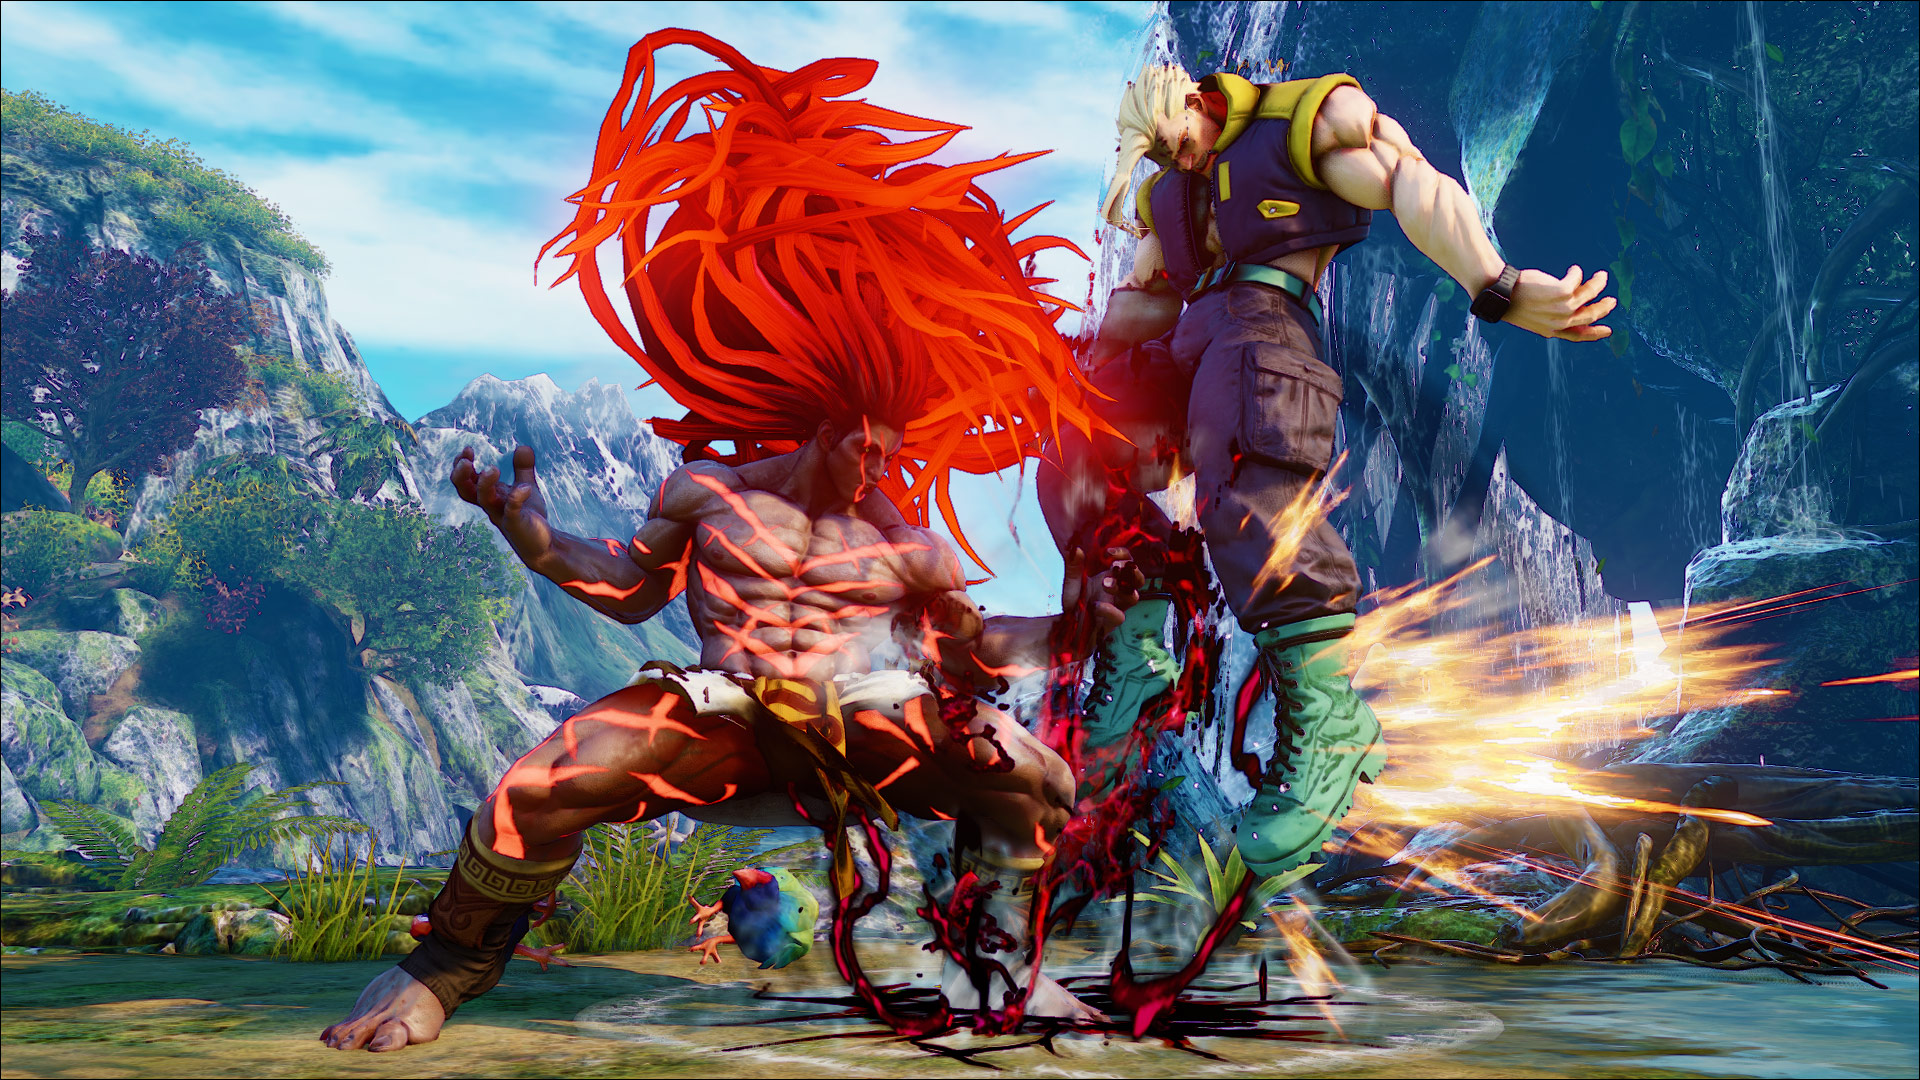 Official screenshots of Necalli in SF5 14 out of 17 image gallery